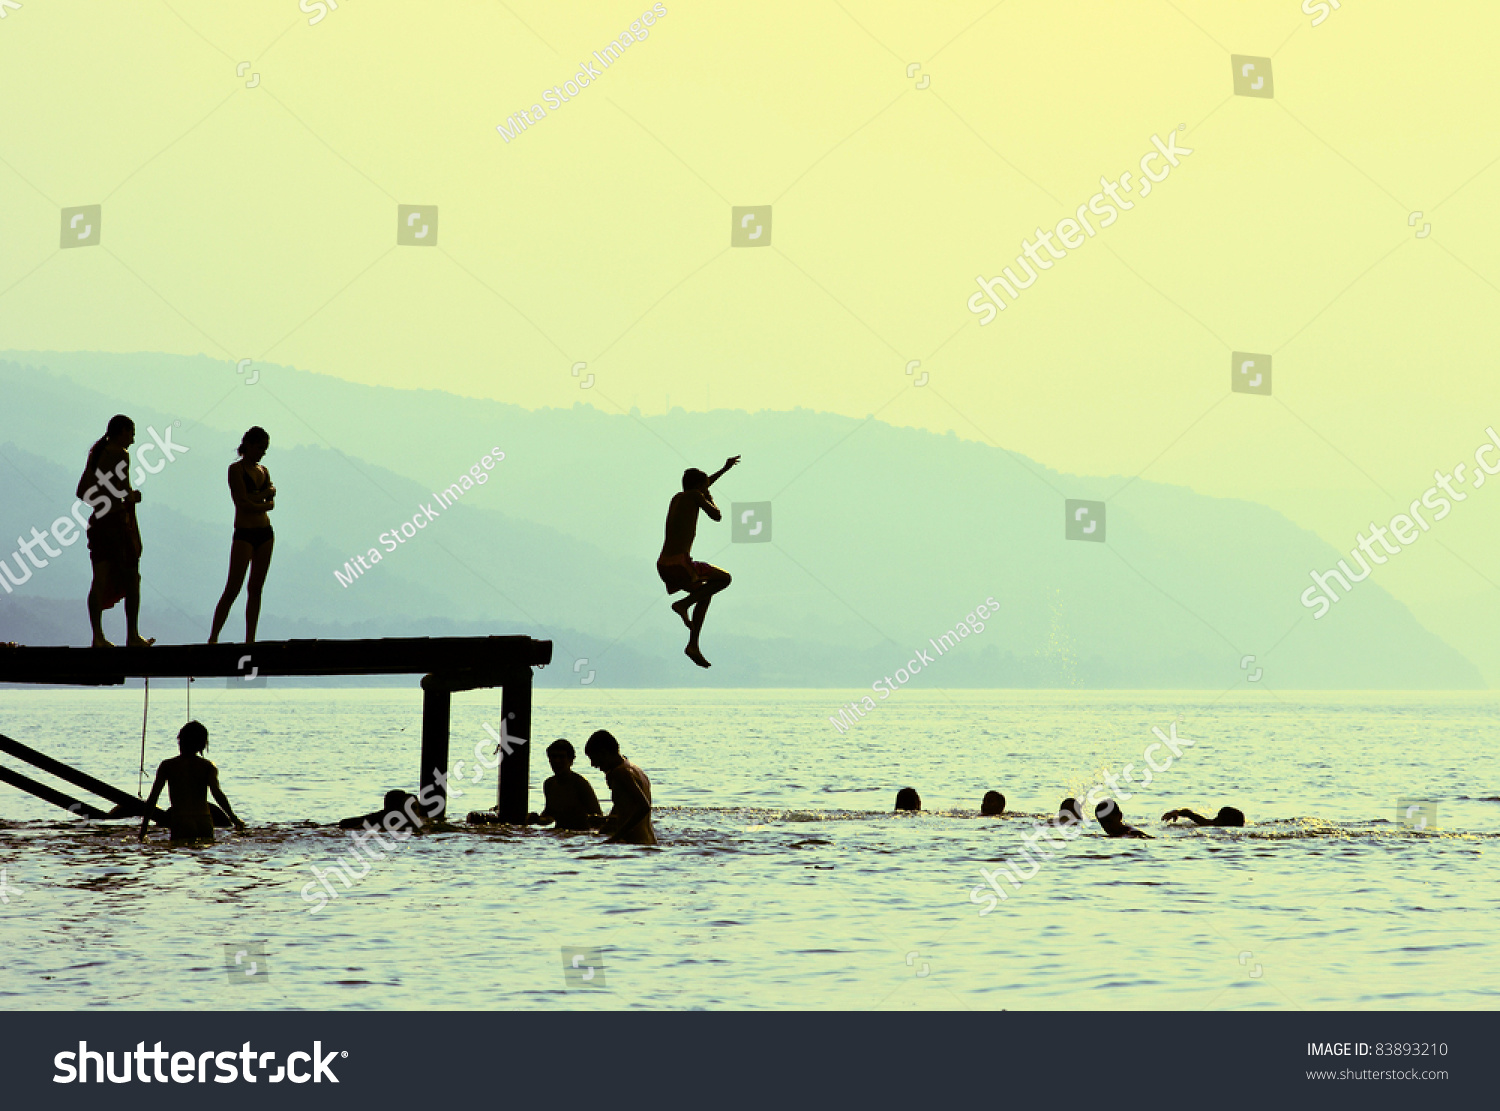 Silhouettes Of Kids Who Jump Off Dock On The Lake At Sunset Stock Photo 83893210 Shutterstock